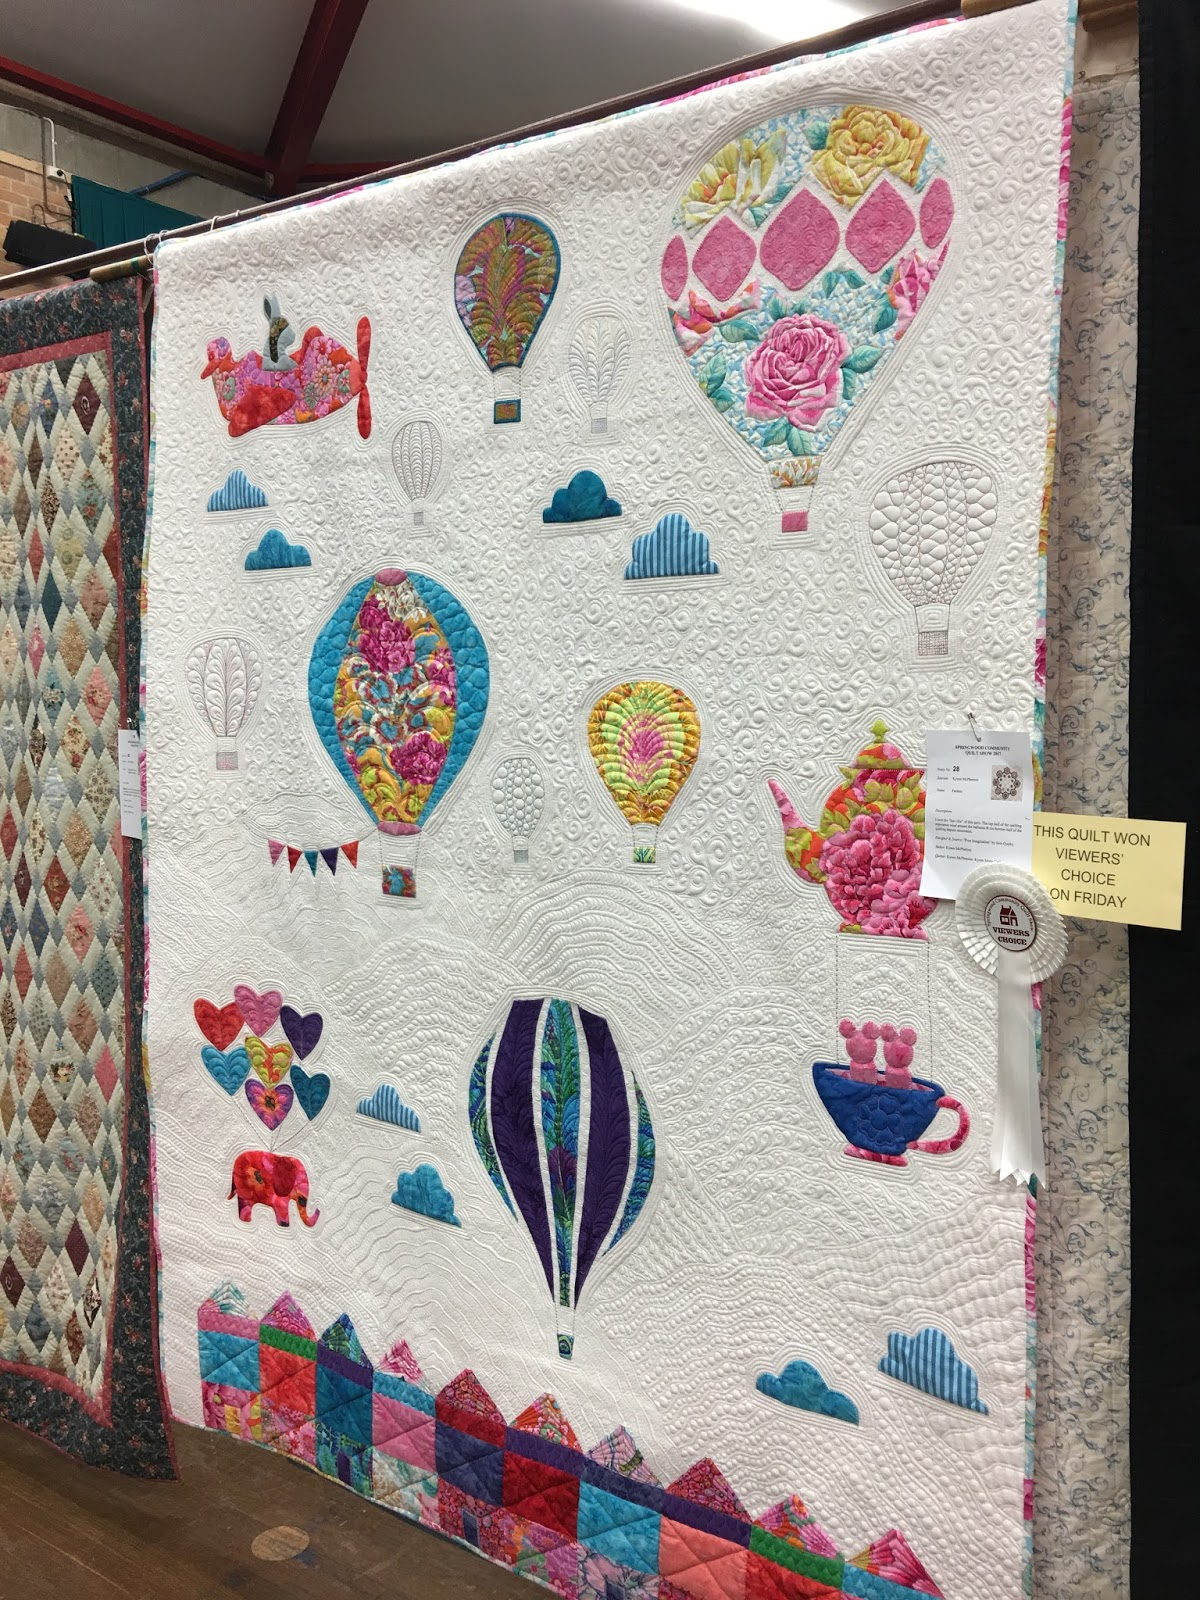 Springwood Community Quilt Show : quilts inc shows - Adamdwight.com